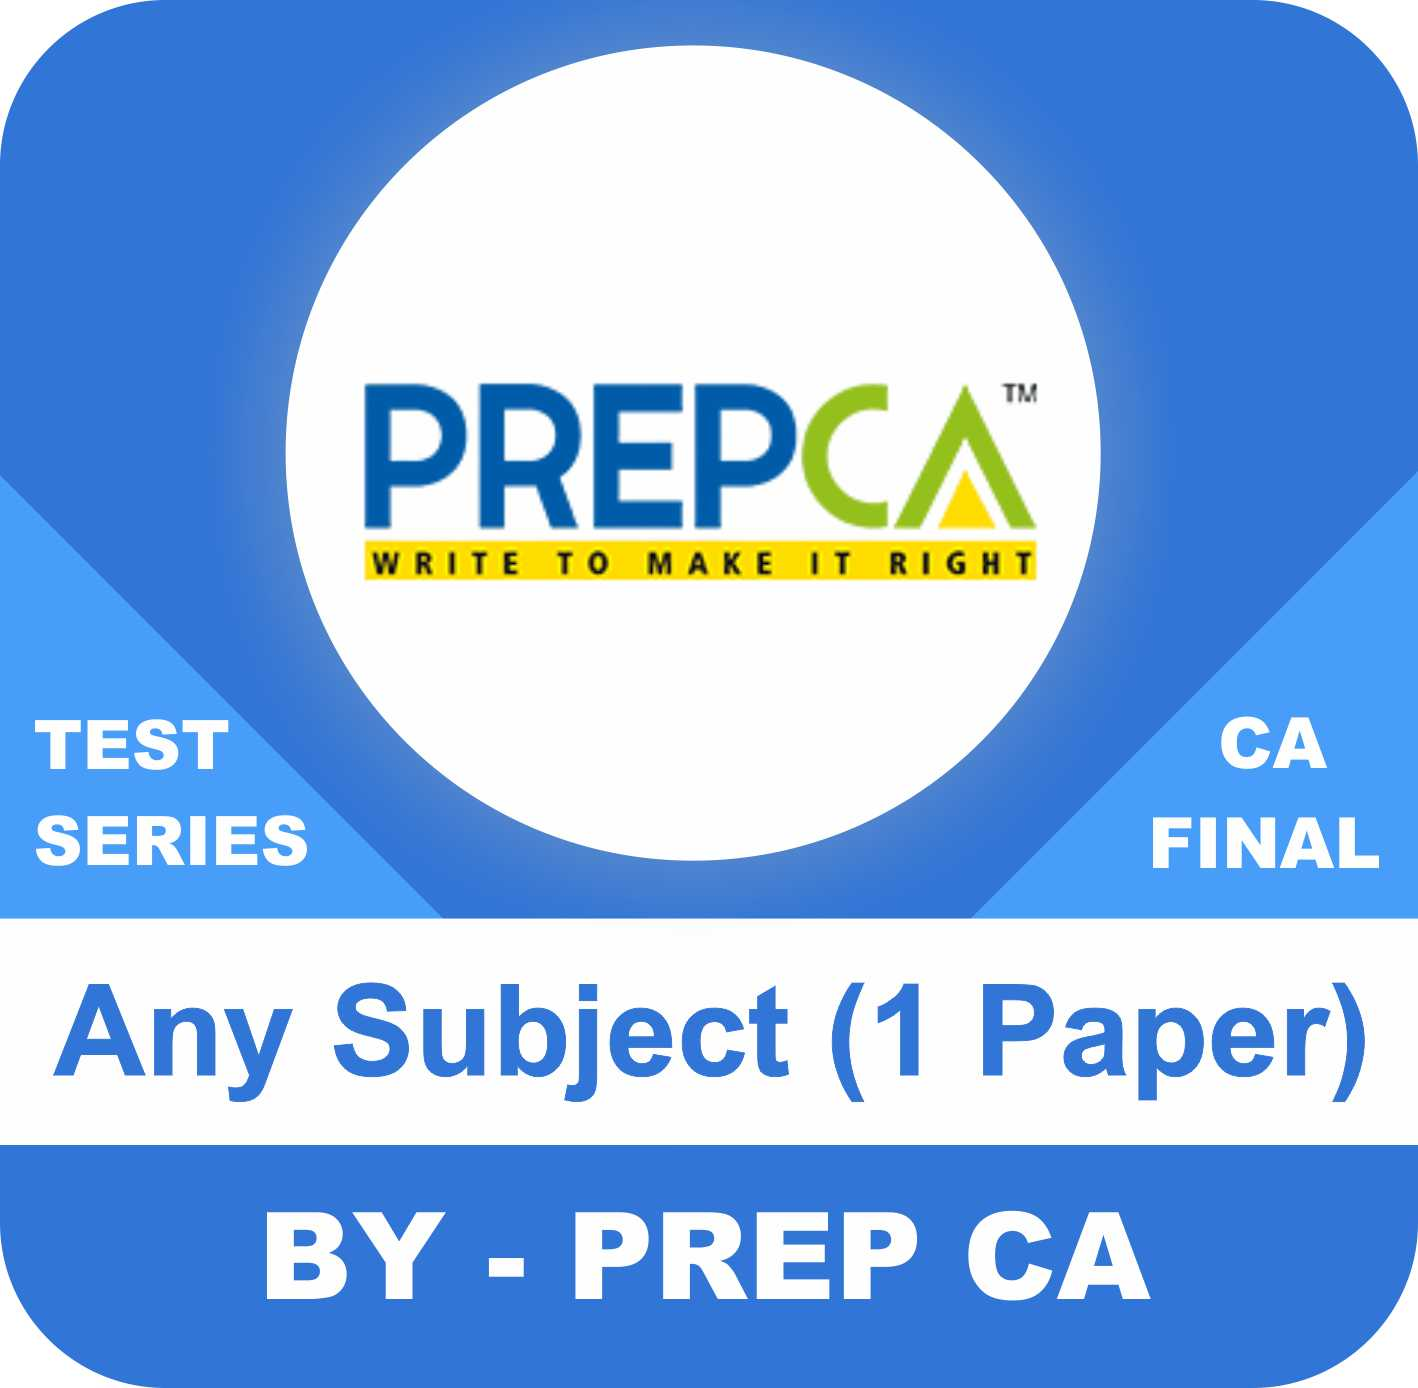 (1 Paper) Any One Subject Test Series in Standard Express Program